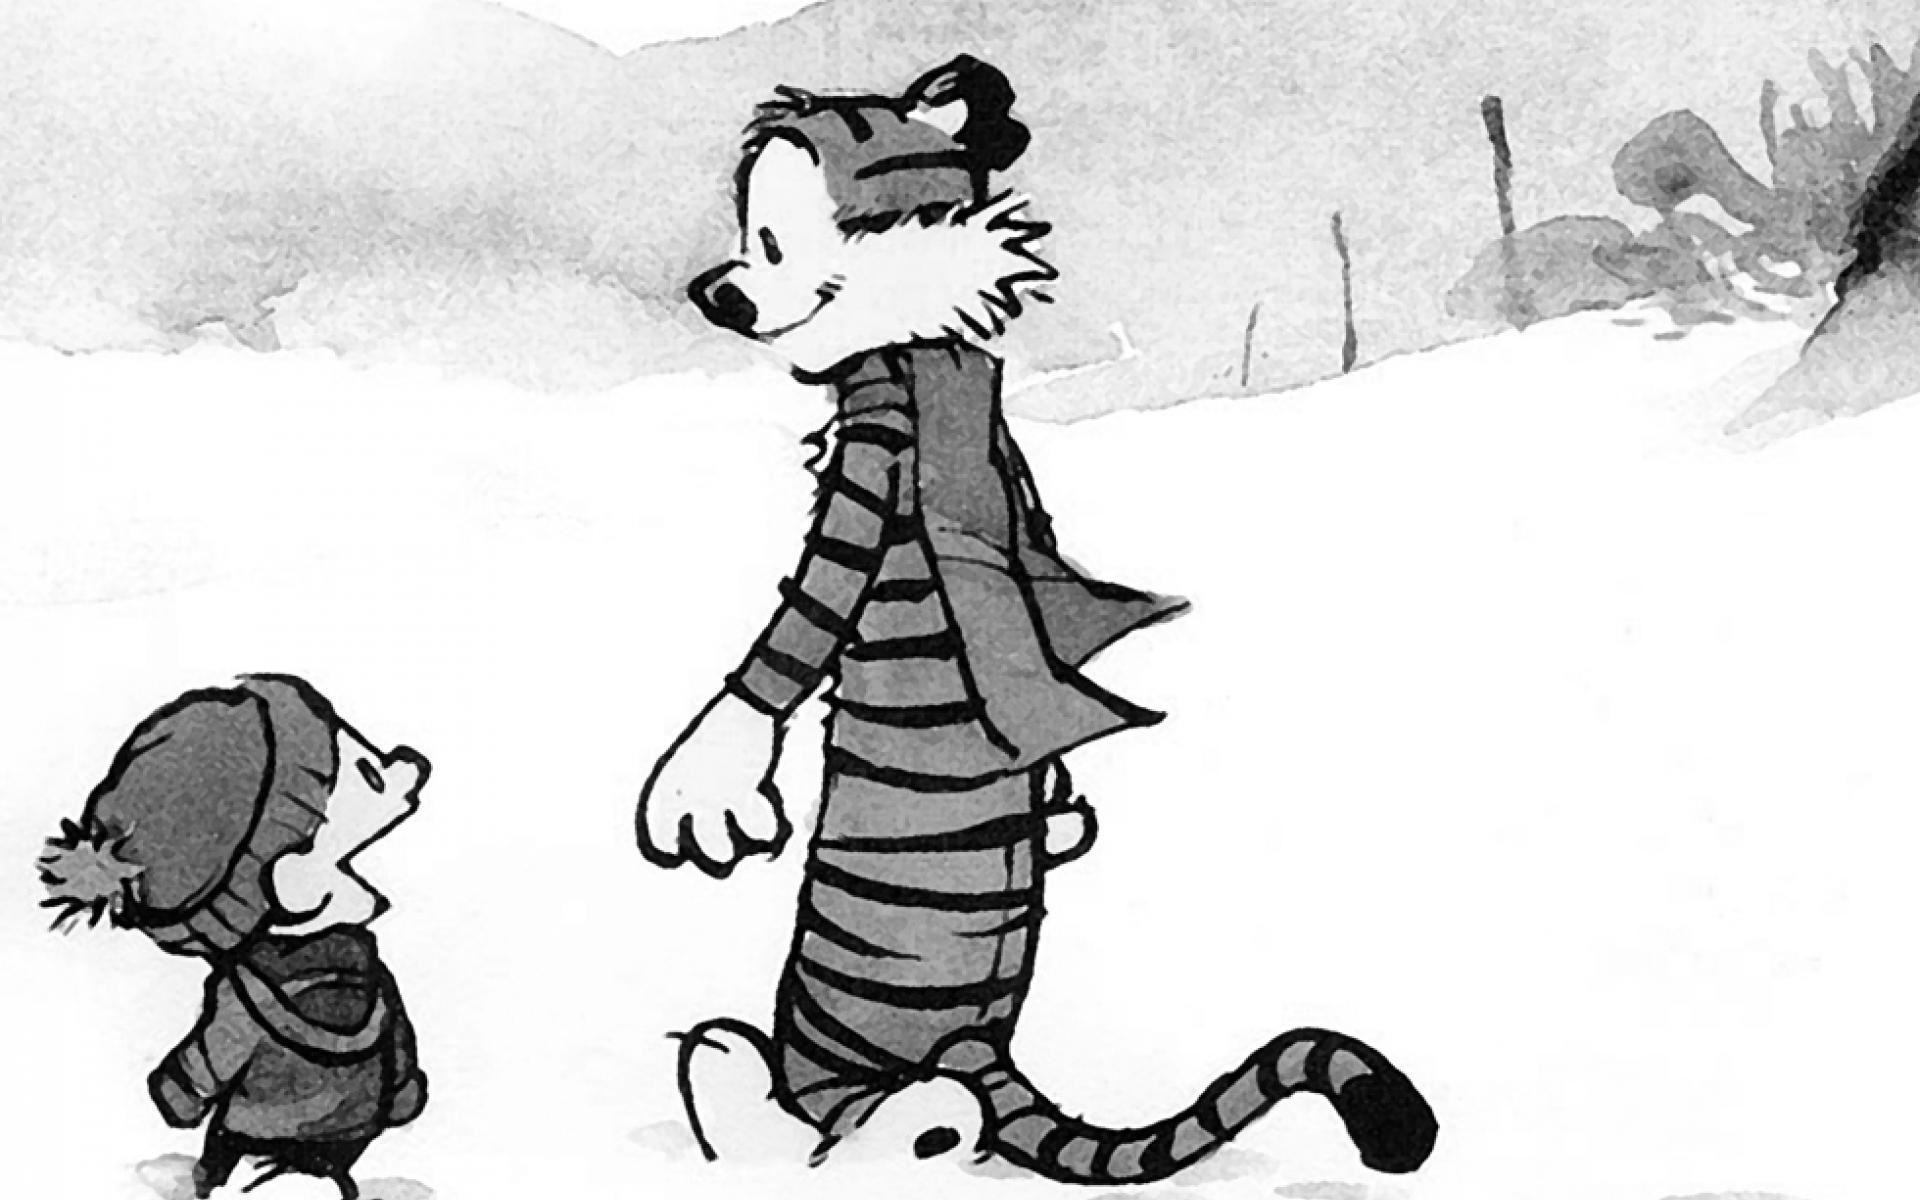 1920x1200 Winter-comics-tigers-calvin-and-hobbes-desktop-hd-